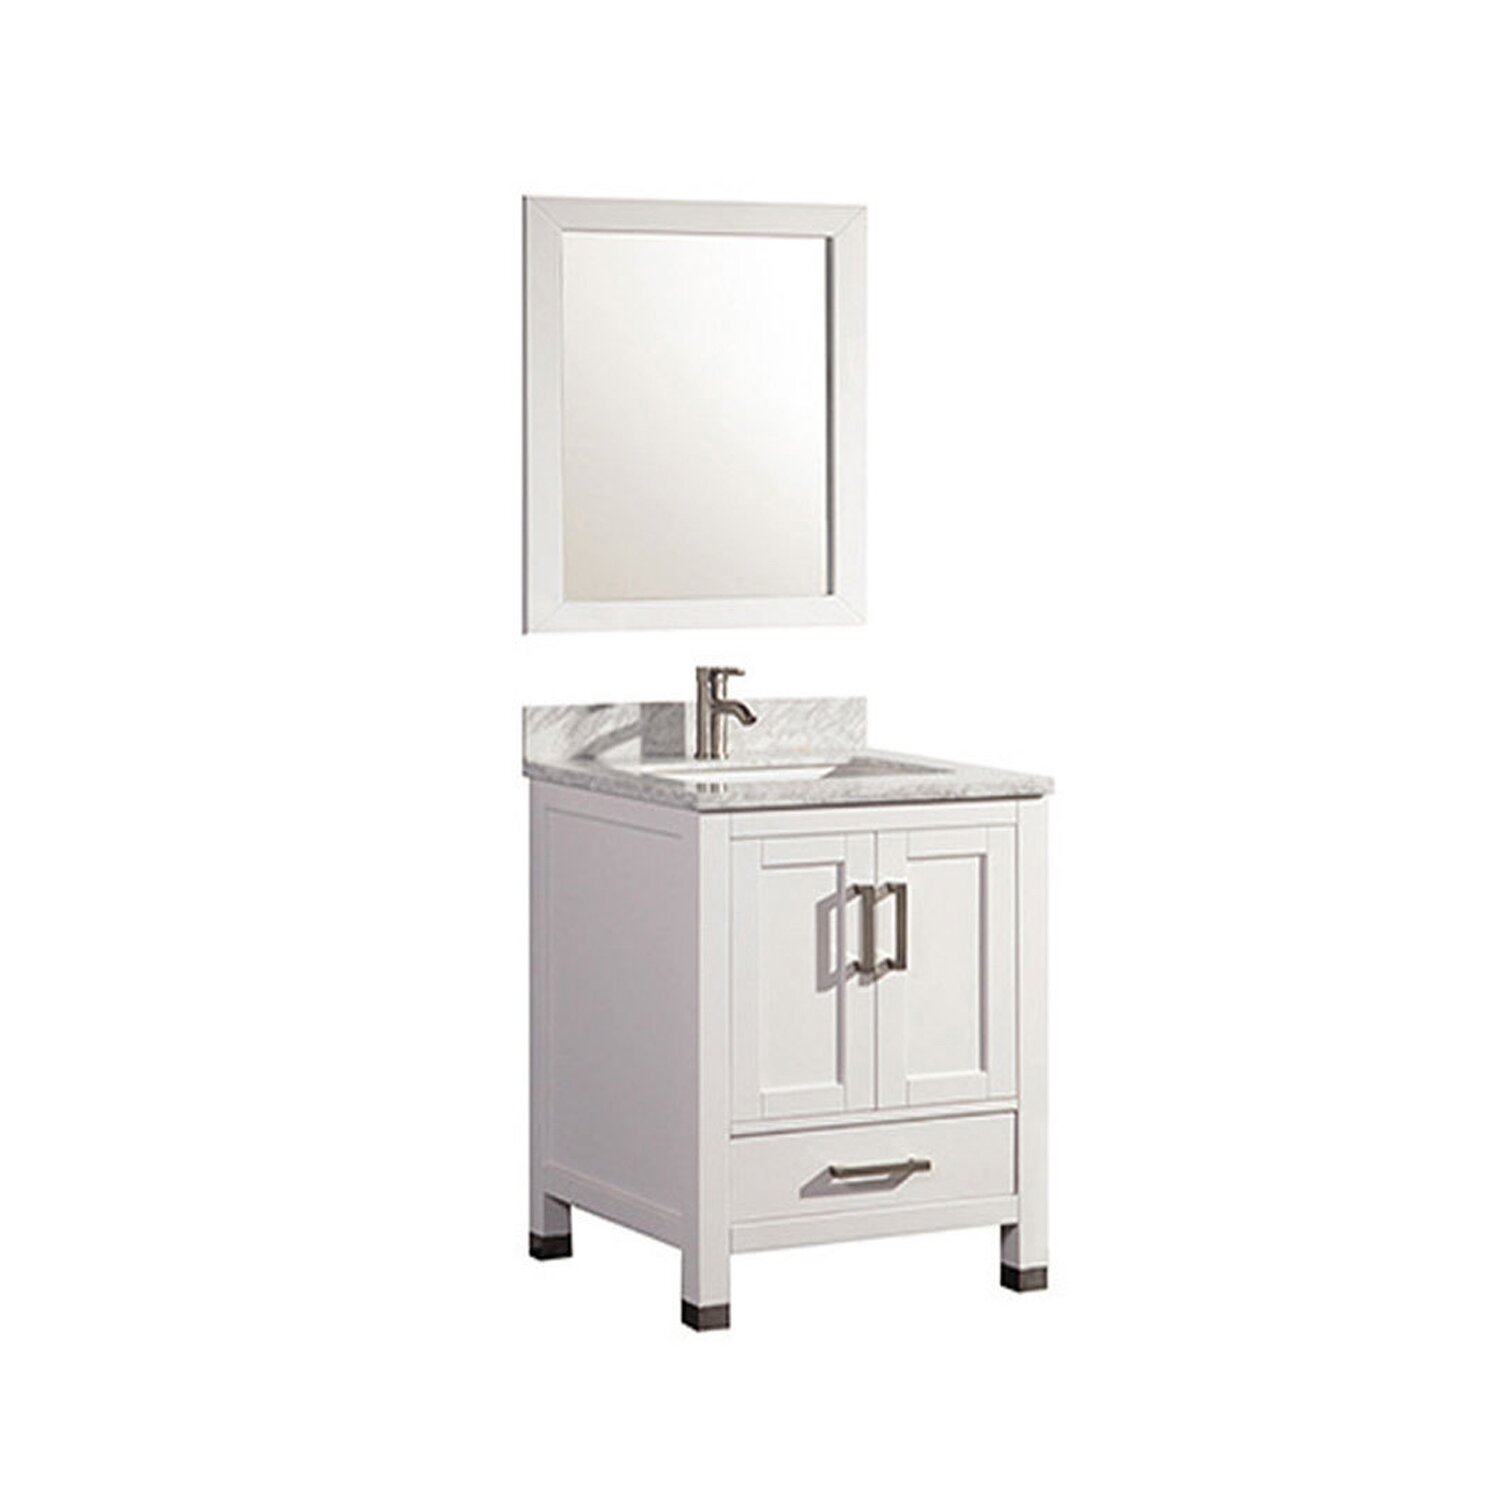 Mtdvanities ricca 24 single sink bathroom vanity set with mirror reviews wayfair Bathroom sink and vanity sets